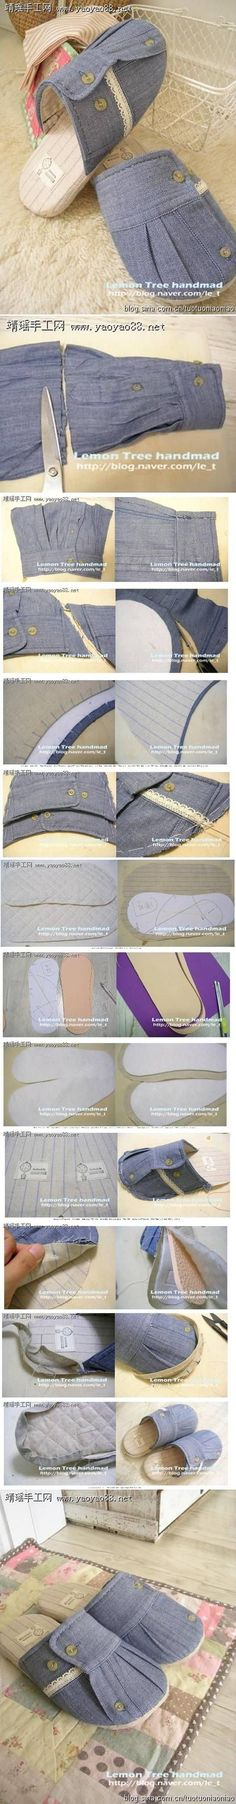 faire des chaussures avec de vieux vêtements http://www.fabdiy.com/diy-making-slippers-from-old-clothes/